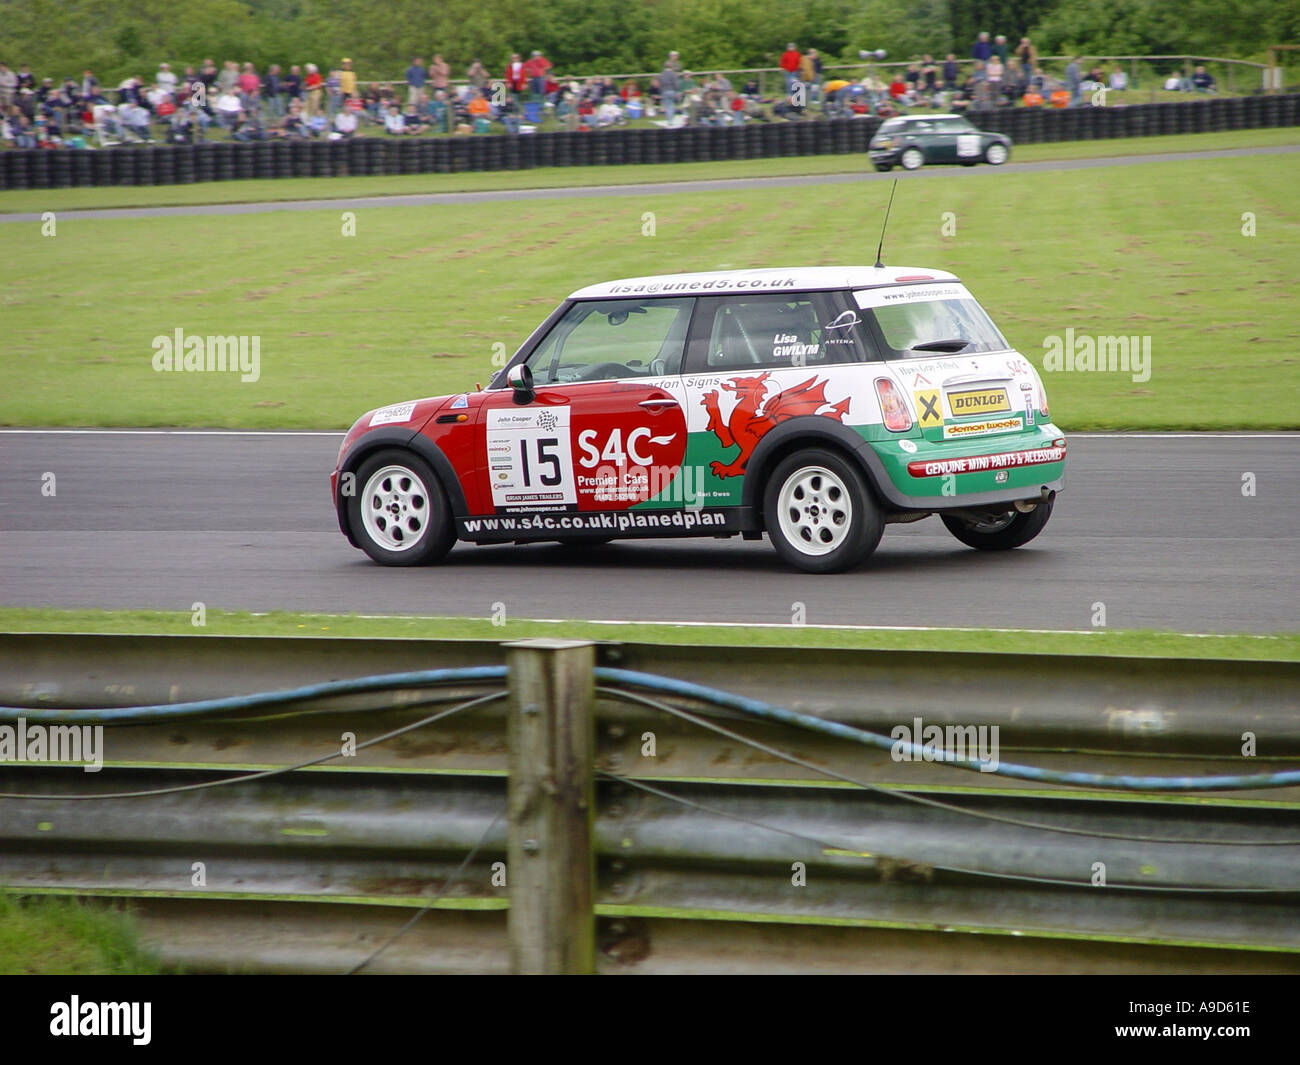 Motor racing car England GB UK 2003 - Stock Image